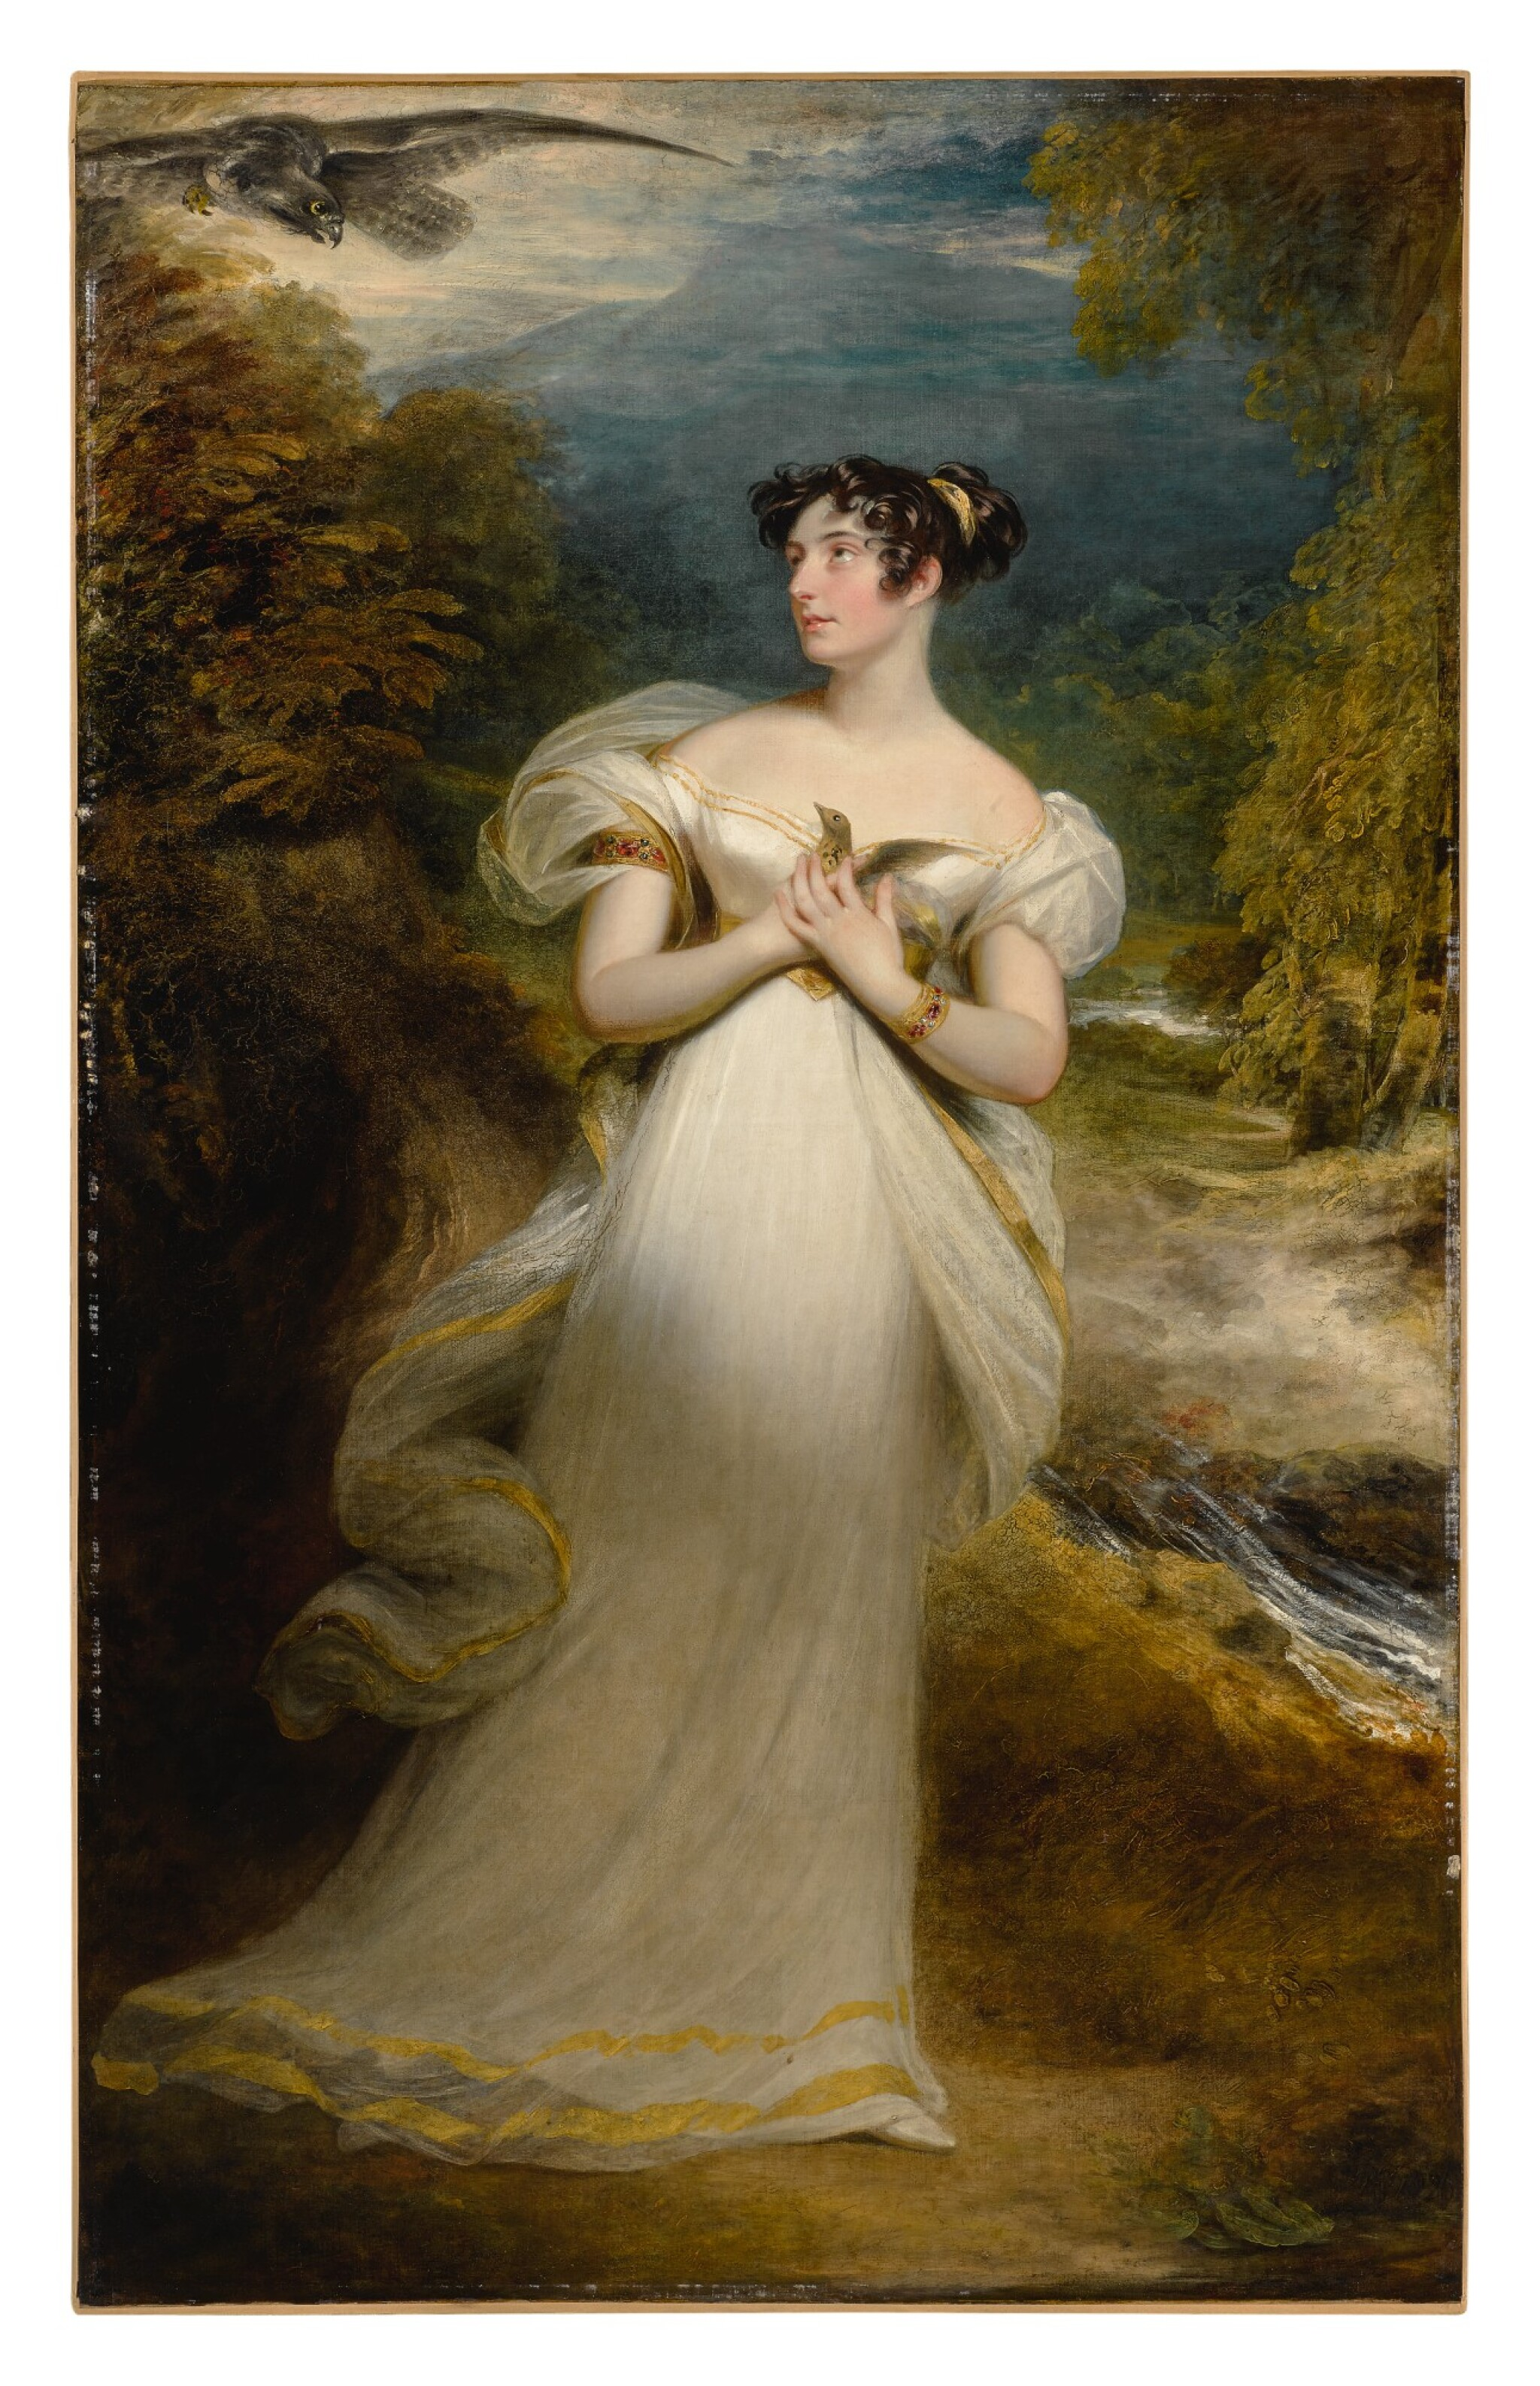 View full screen - View 1 of Lot 123. SIR WILLIAM BEECHEY, R.A. | PORTRAIT OF MISS MARY PAYNE, LATER MRS. DOLPHIN, FULL-LENGTH, IN A WHITE GOWN AND HOLDING A THRUSH AS AN EAGLE SWOOPS TOWARD HER, IN A WOODED LANDSCAPE.